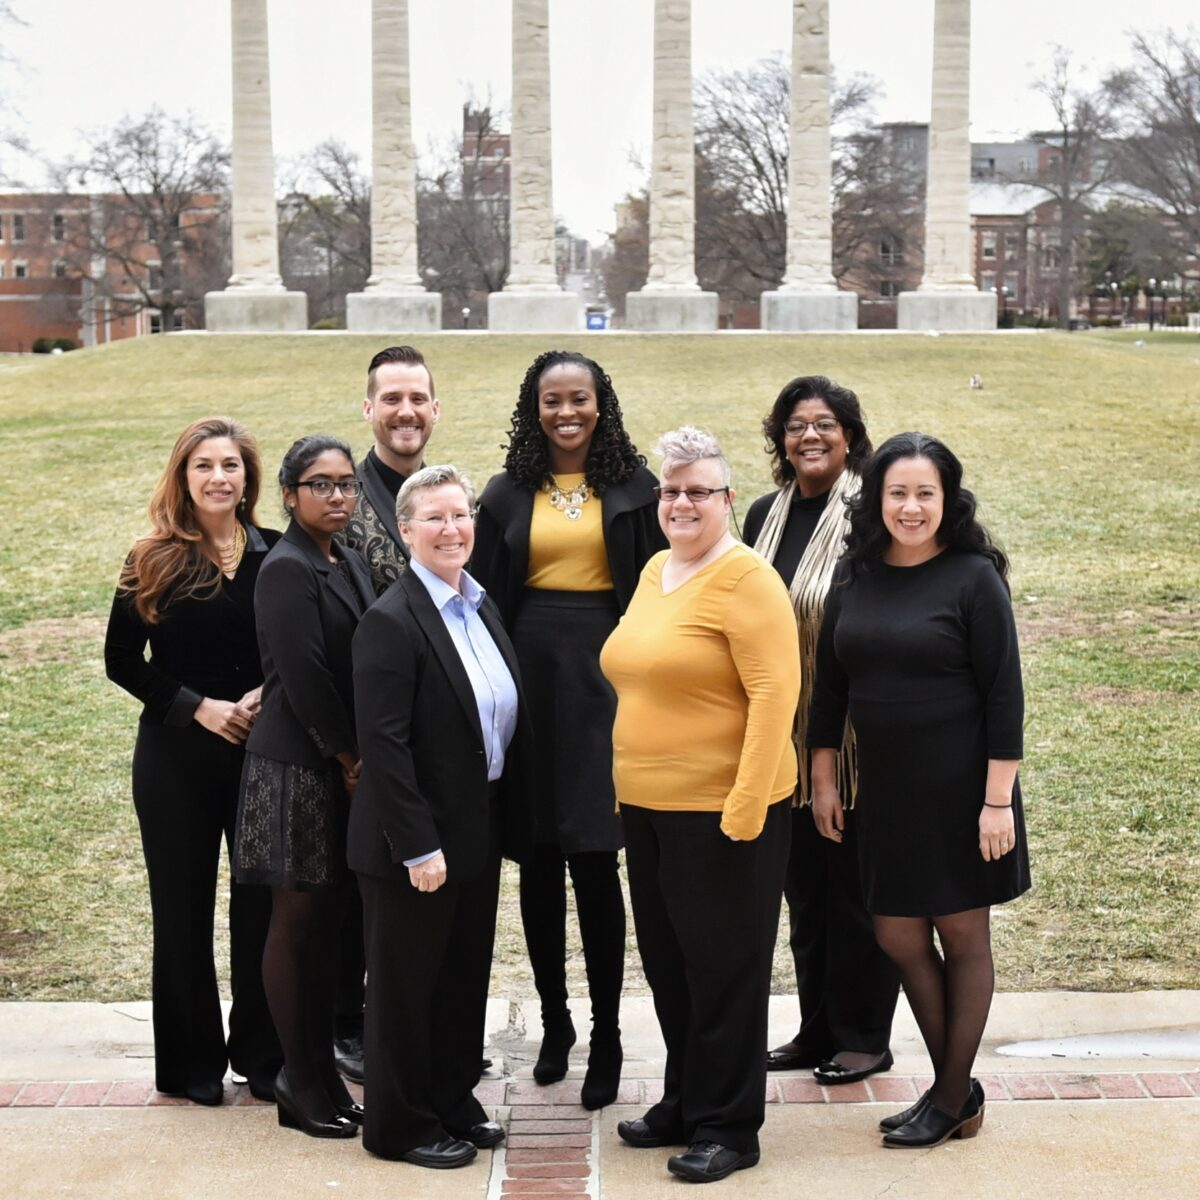 Eight-person staff on the Quad with the Columns in the background.